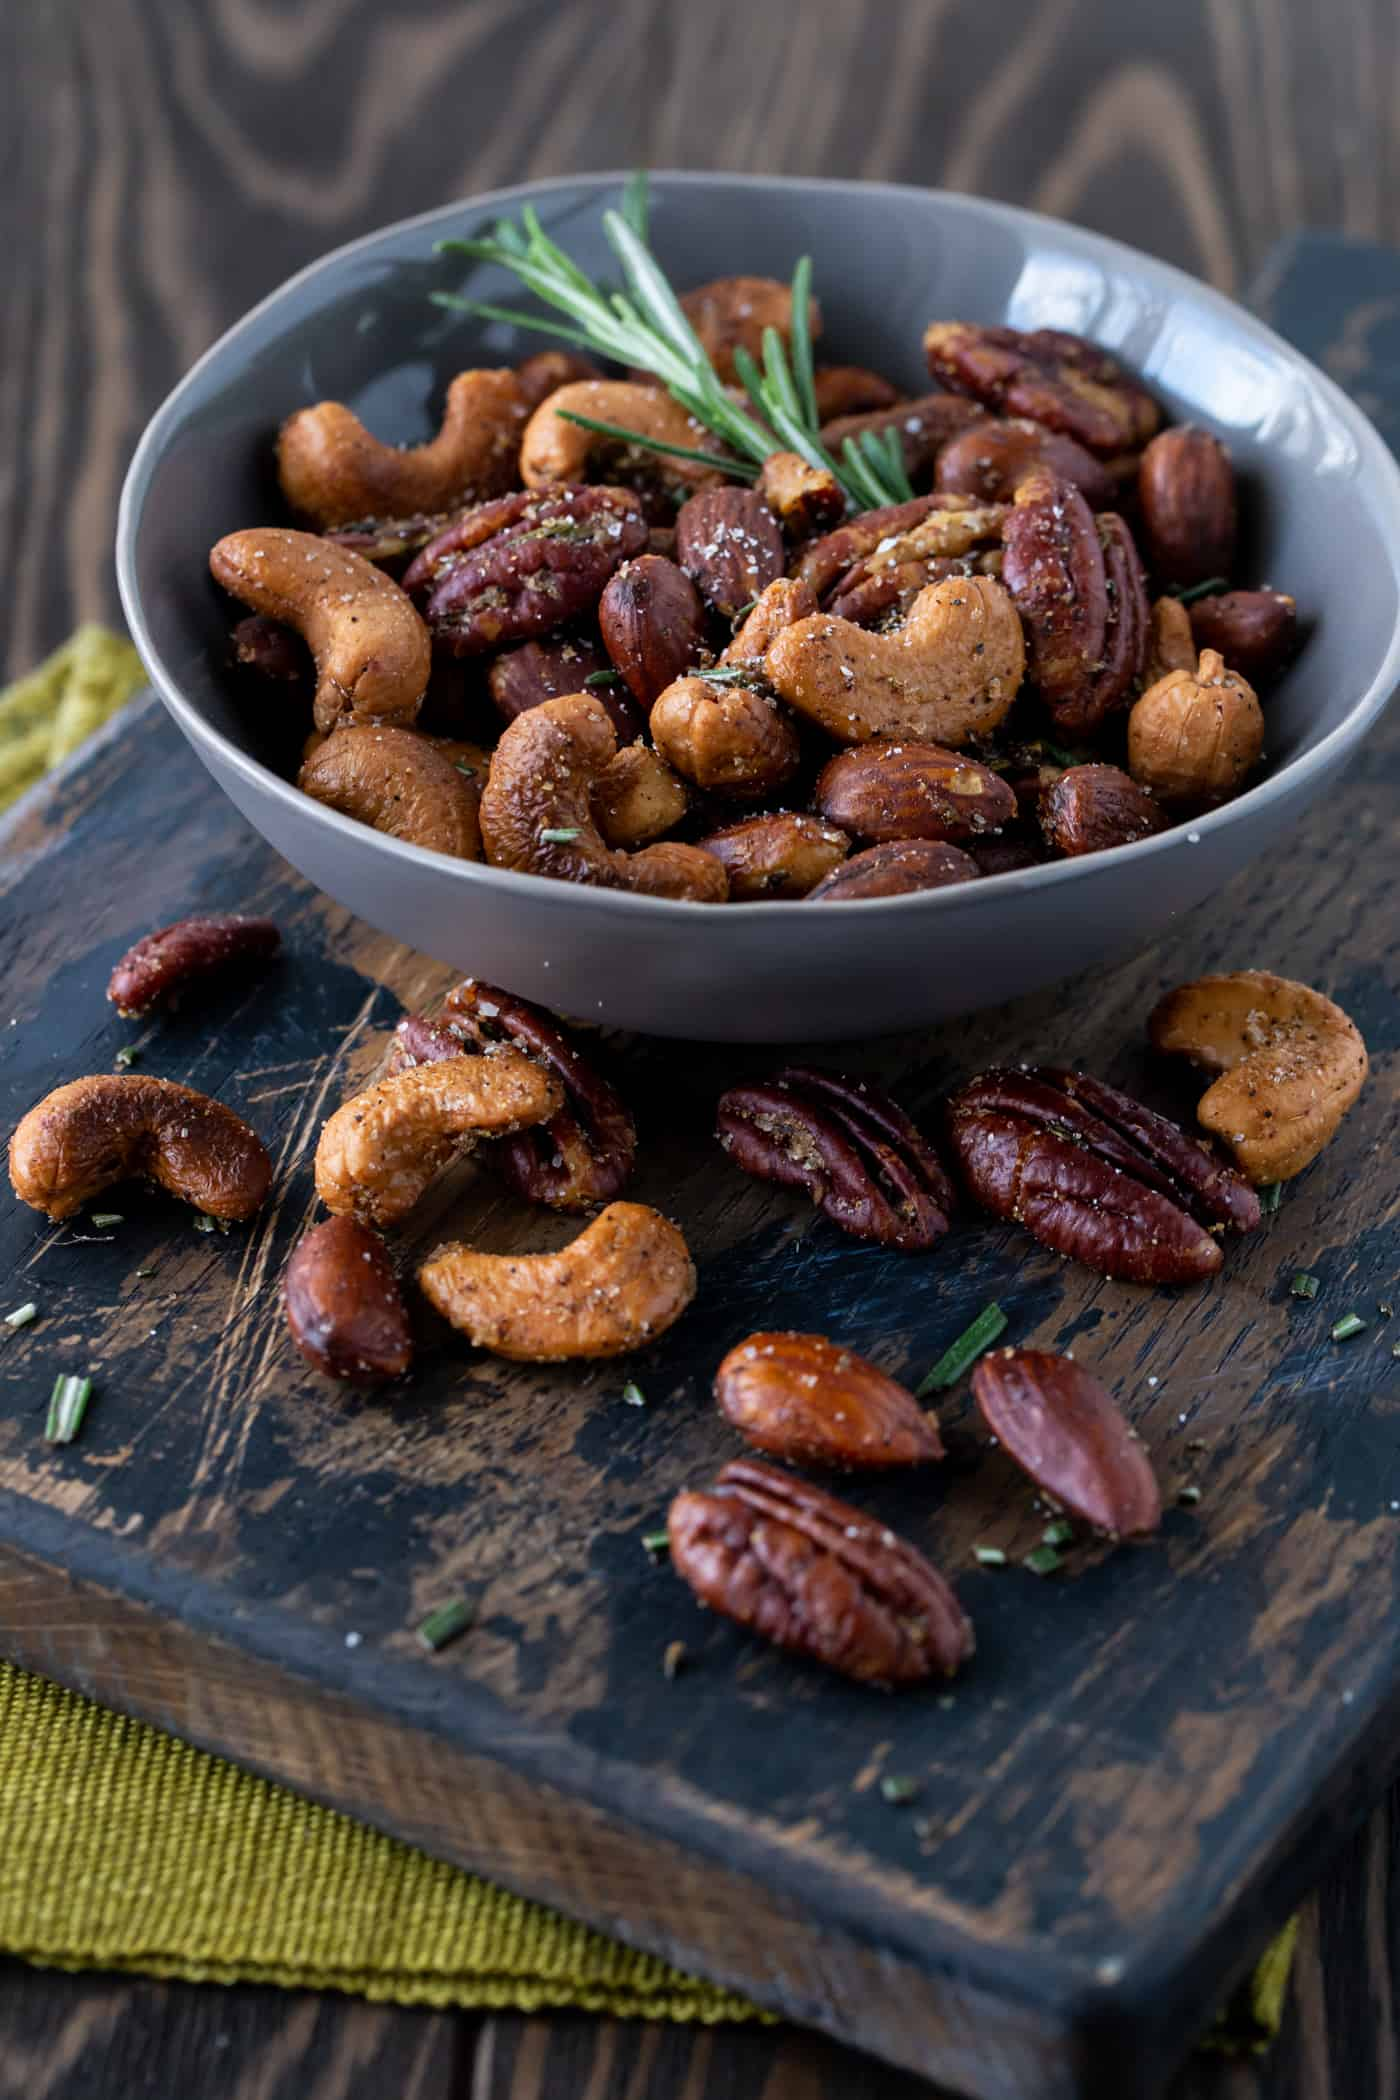 Serving bowl of Chipotle and Rosemary Roasted Nuts on a dark background with fresh rosemary for garnish.